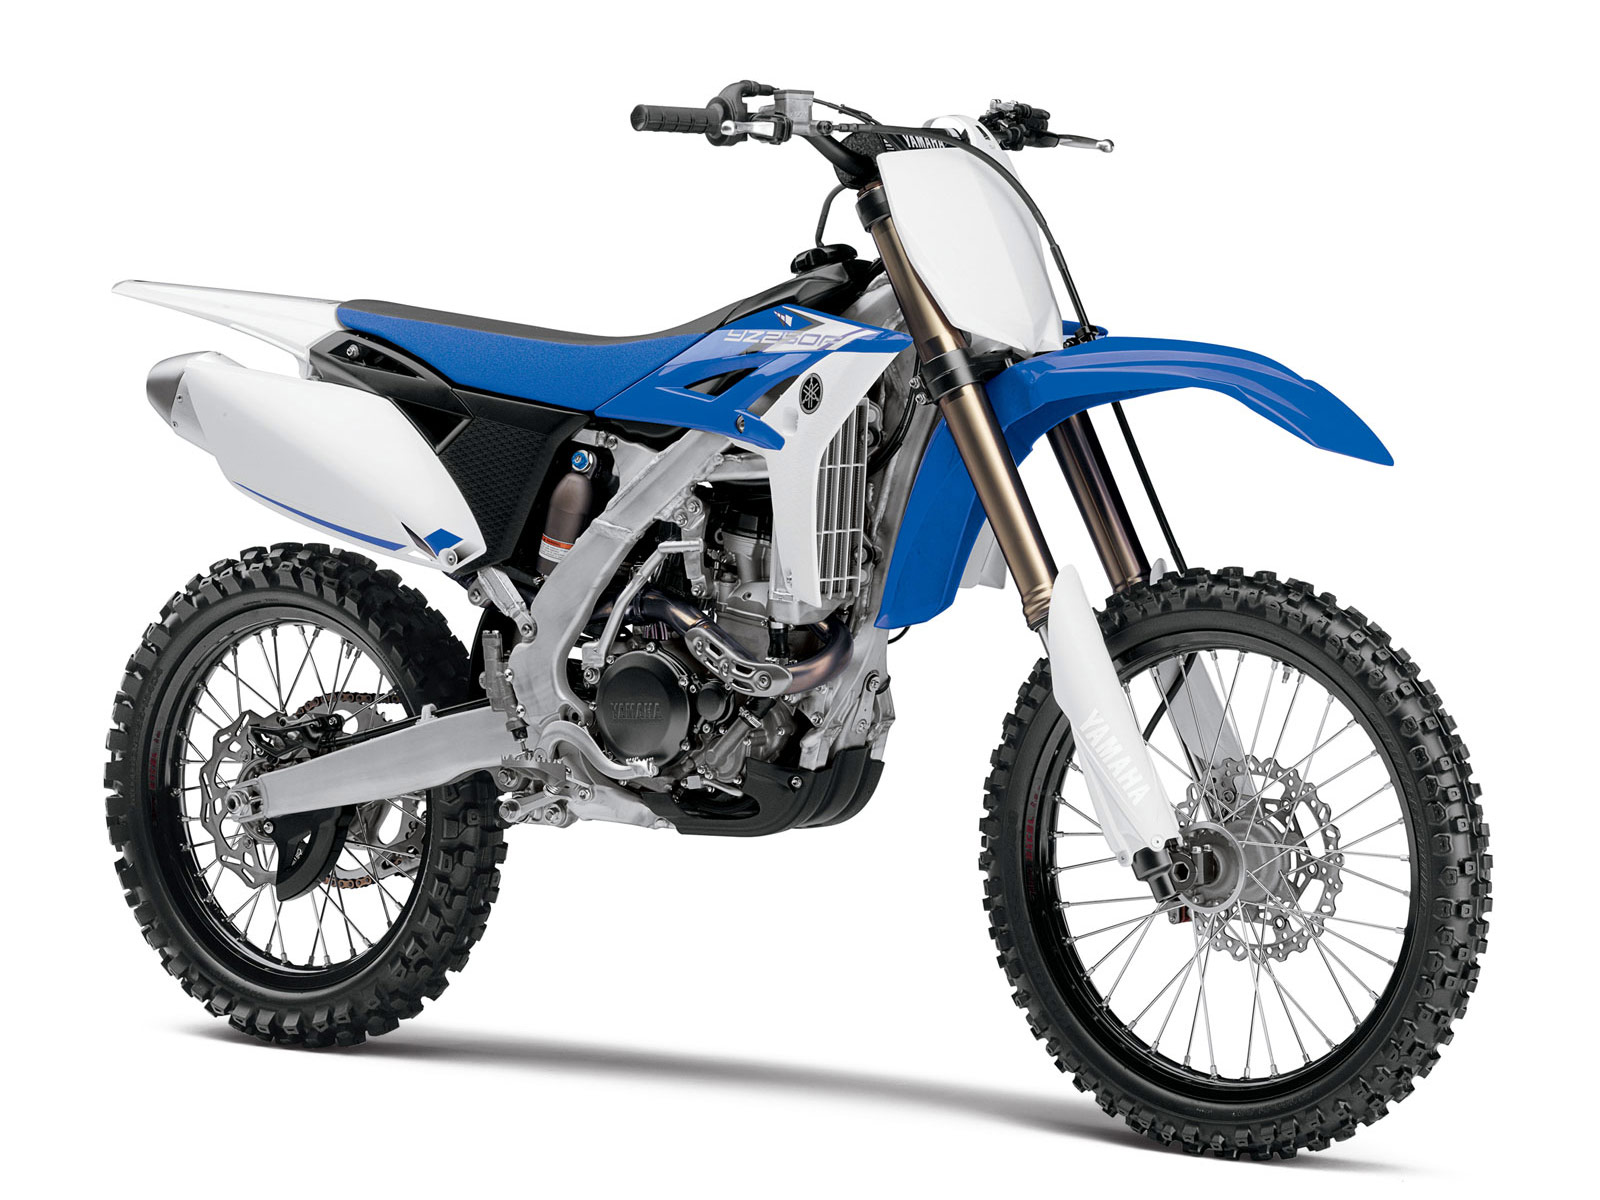 yamaha 250 4 stroke dirt bike wallpaper for desktop